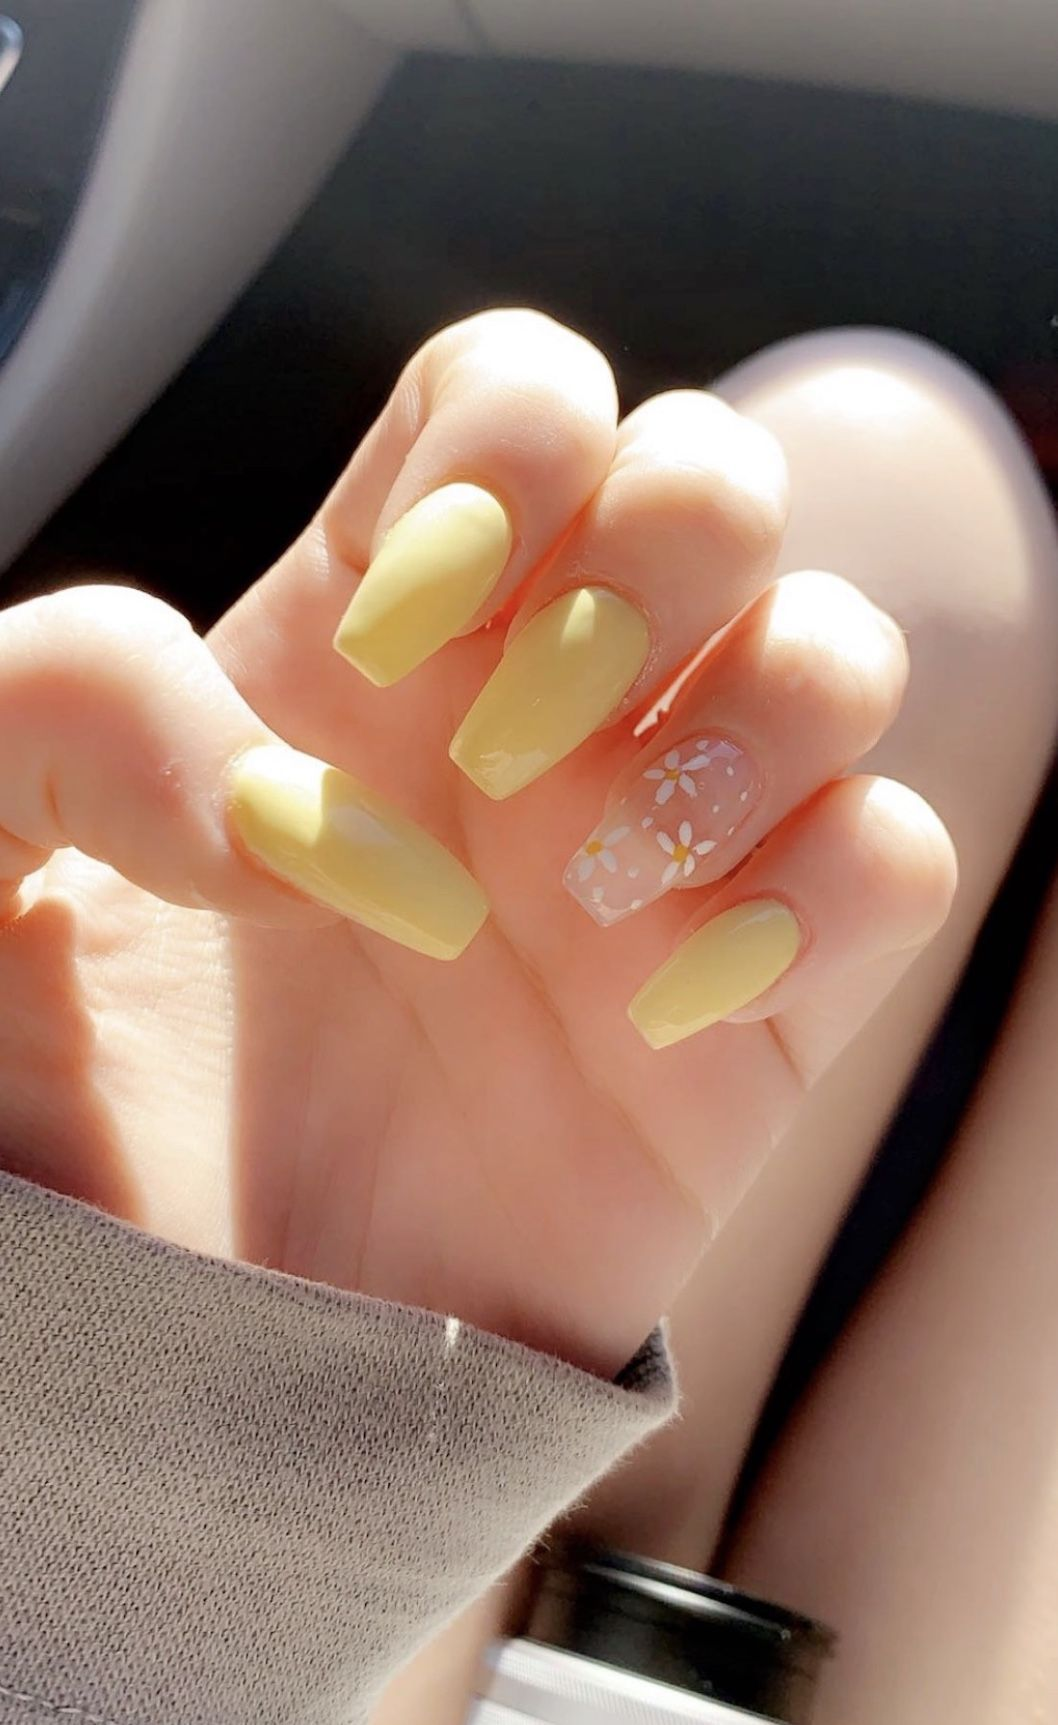 Pin on aesthetic nails